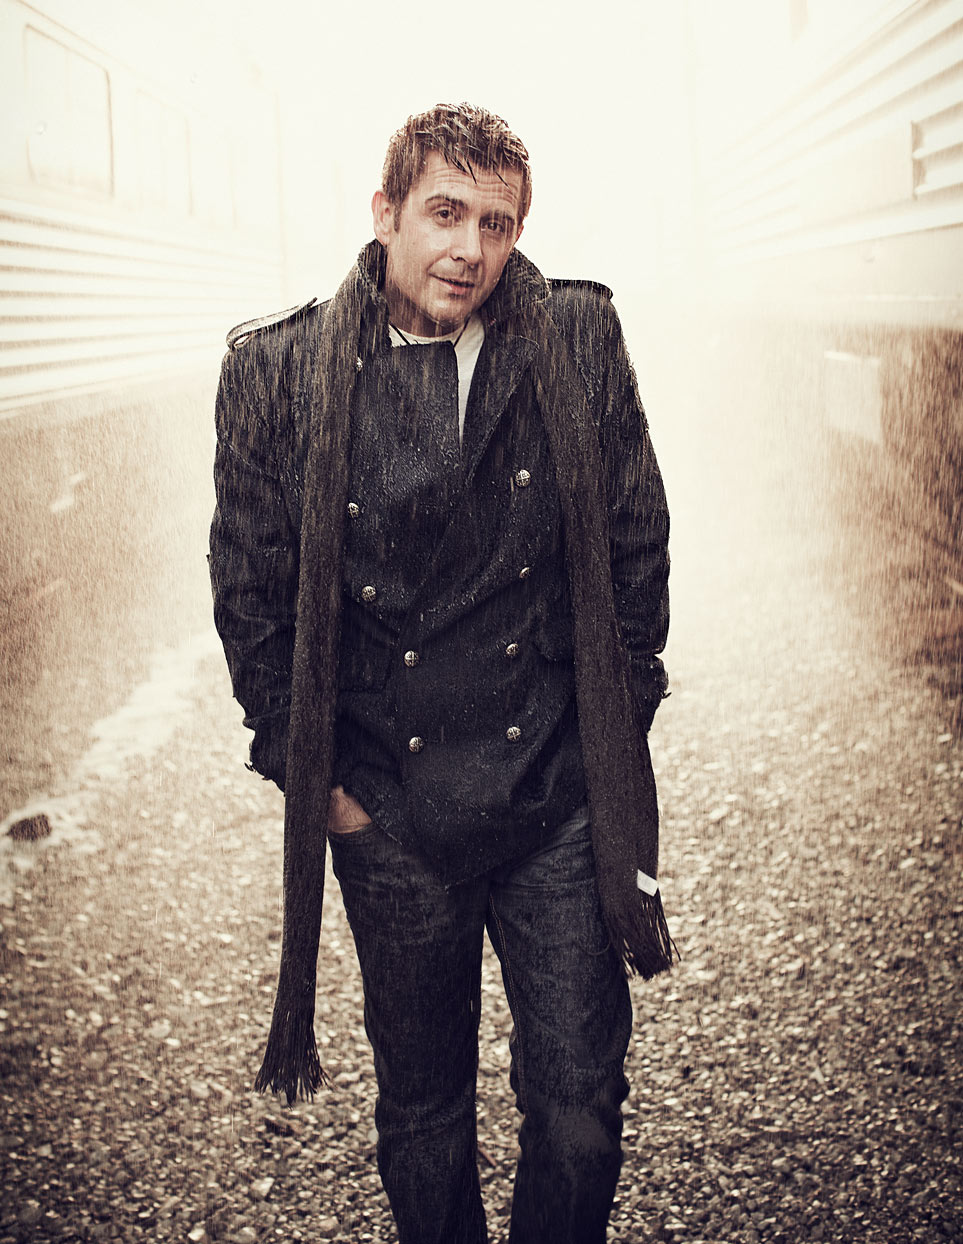 Mark DeLong - Celebrity Photographer - Actor walking between rail cars in dreary weather.